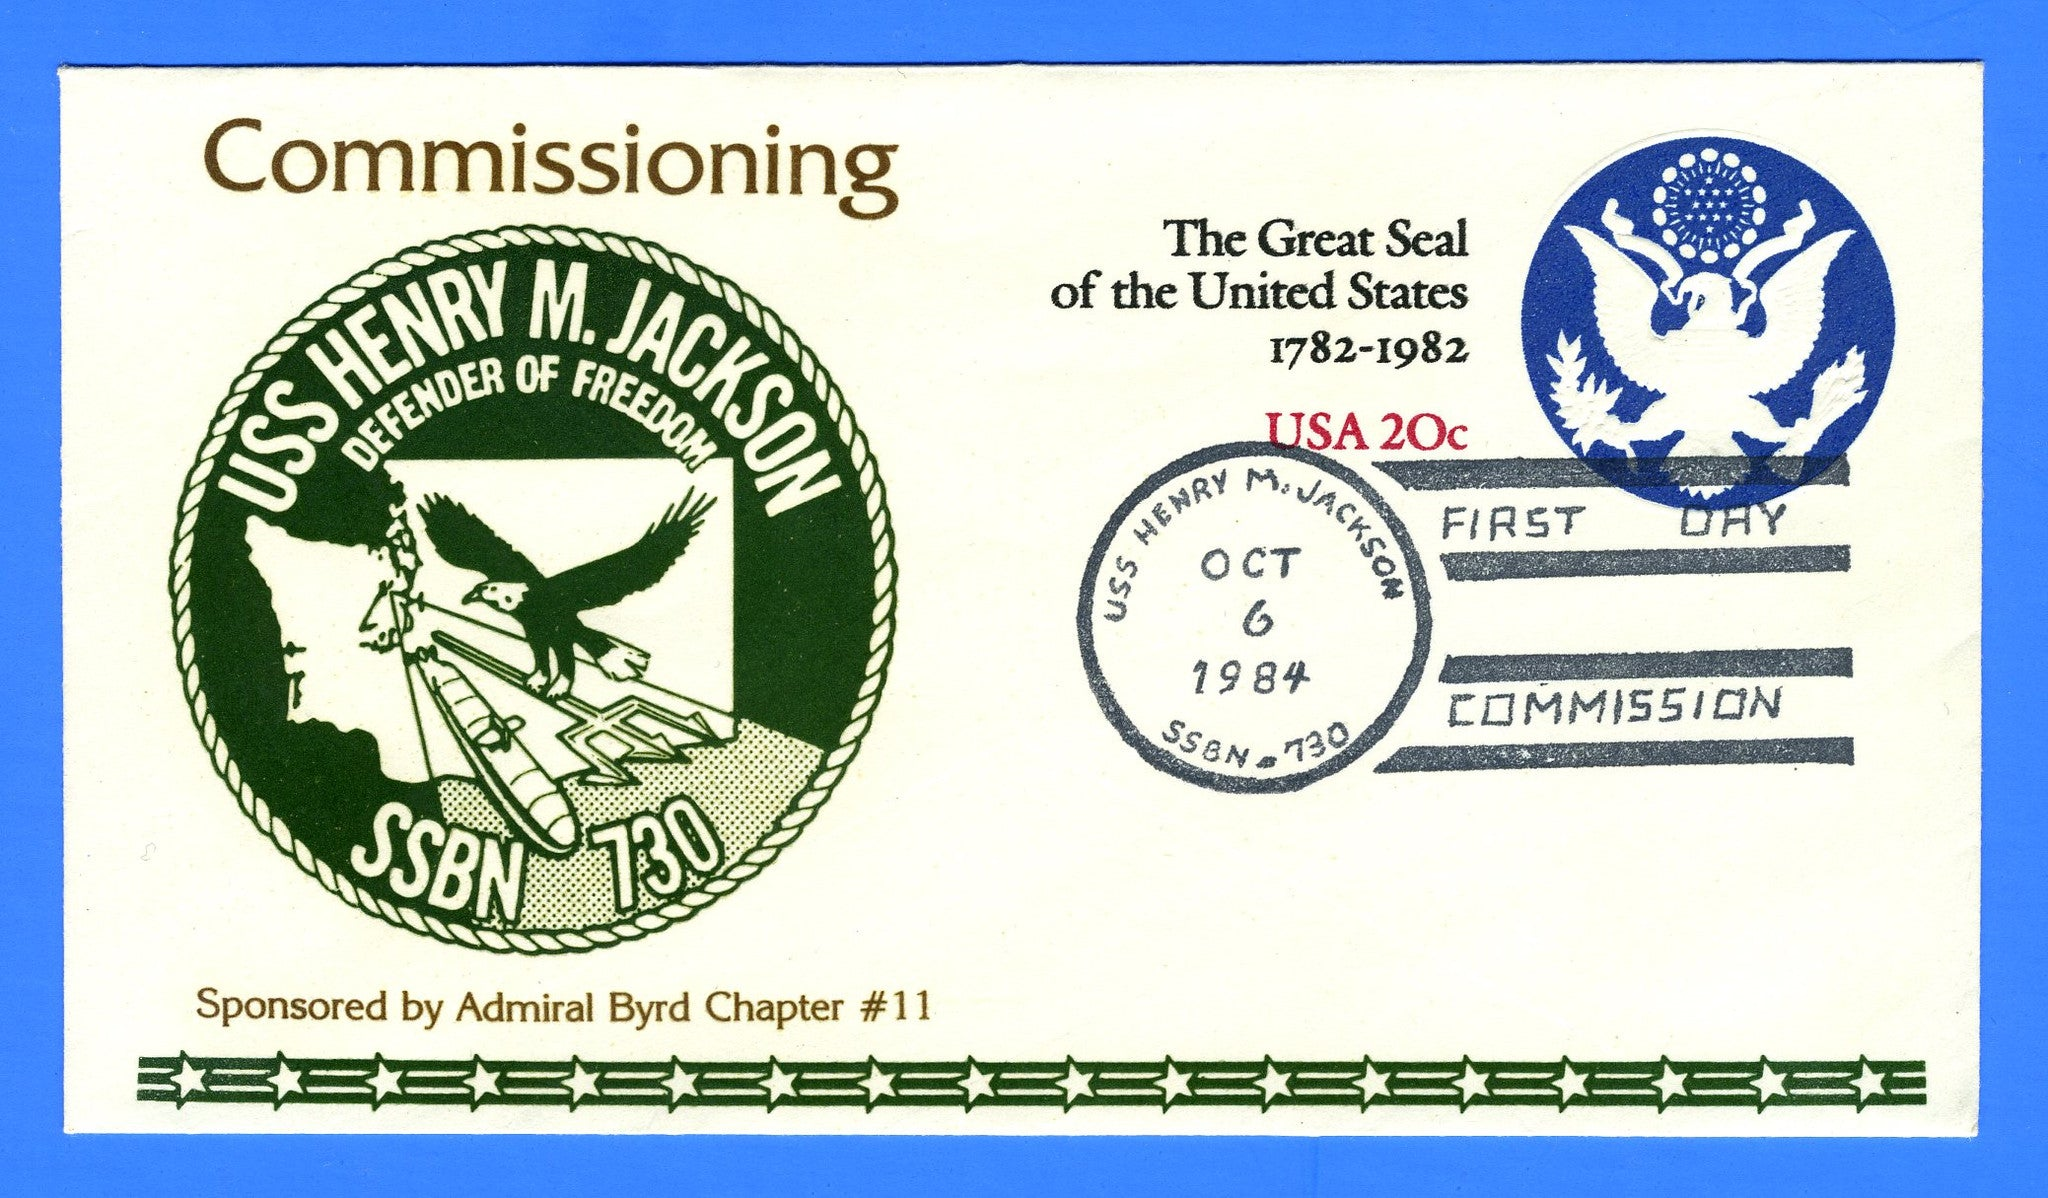 USS Henry M. Jackson SSBN-730 Commissioned October 6, 1984 - Cachet by Admiral Byrd Chapter No. 11, USCS